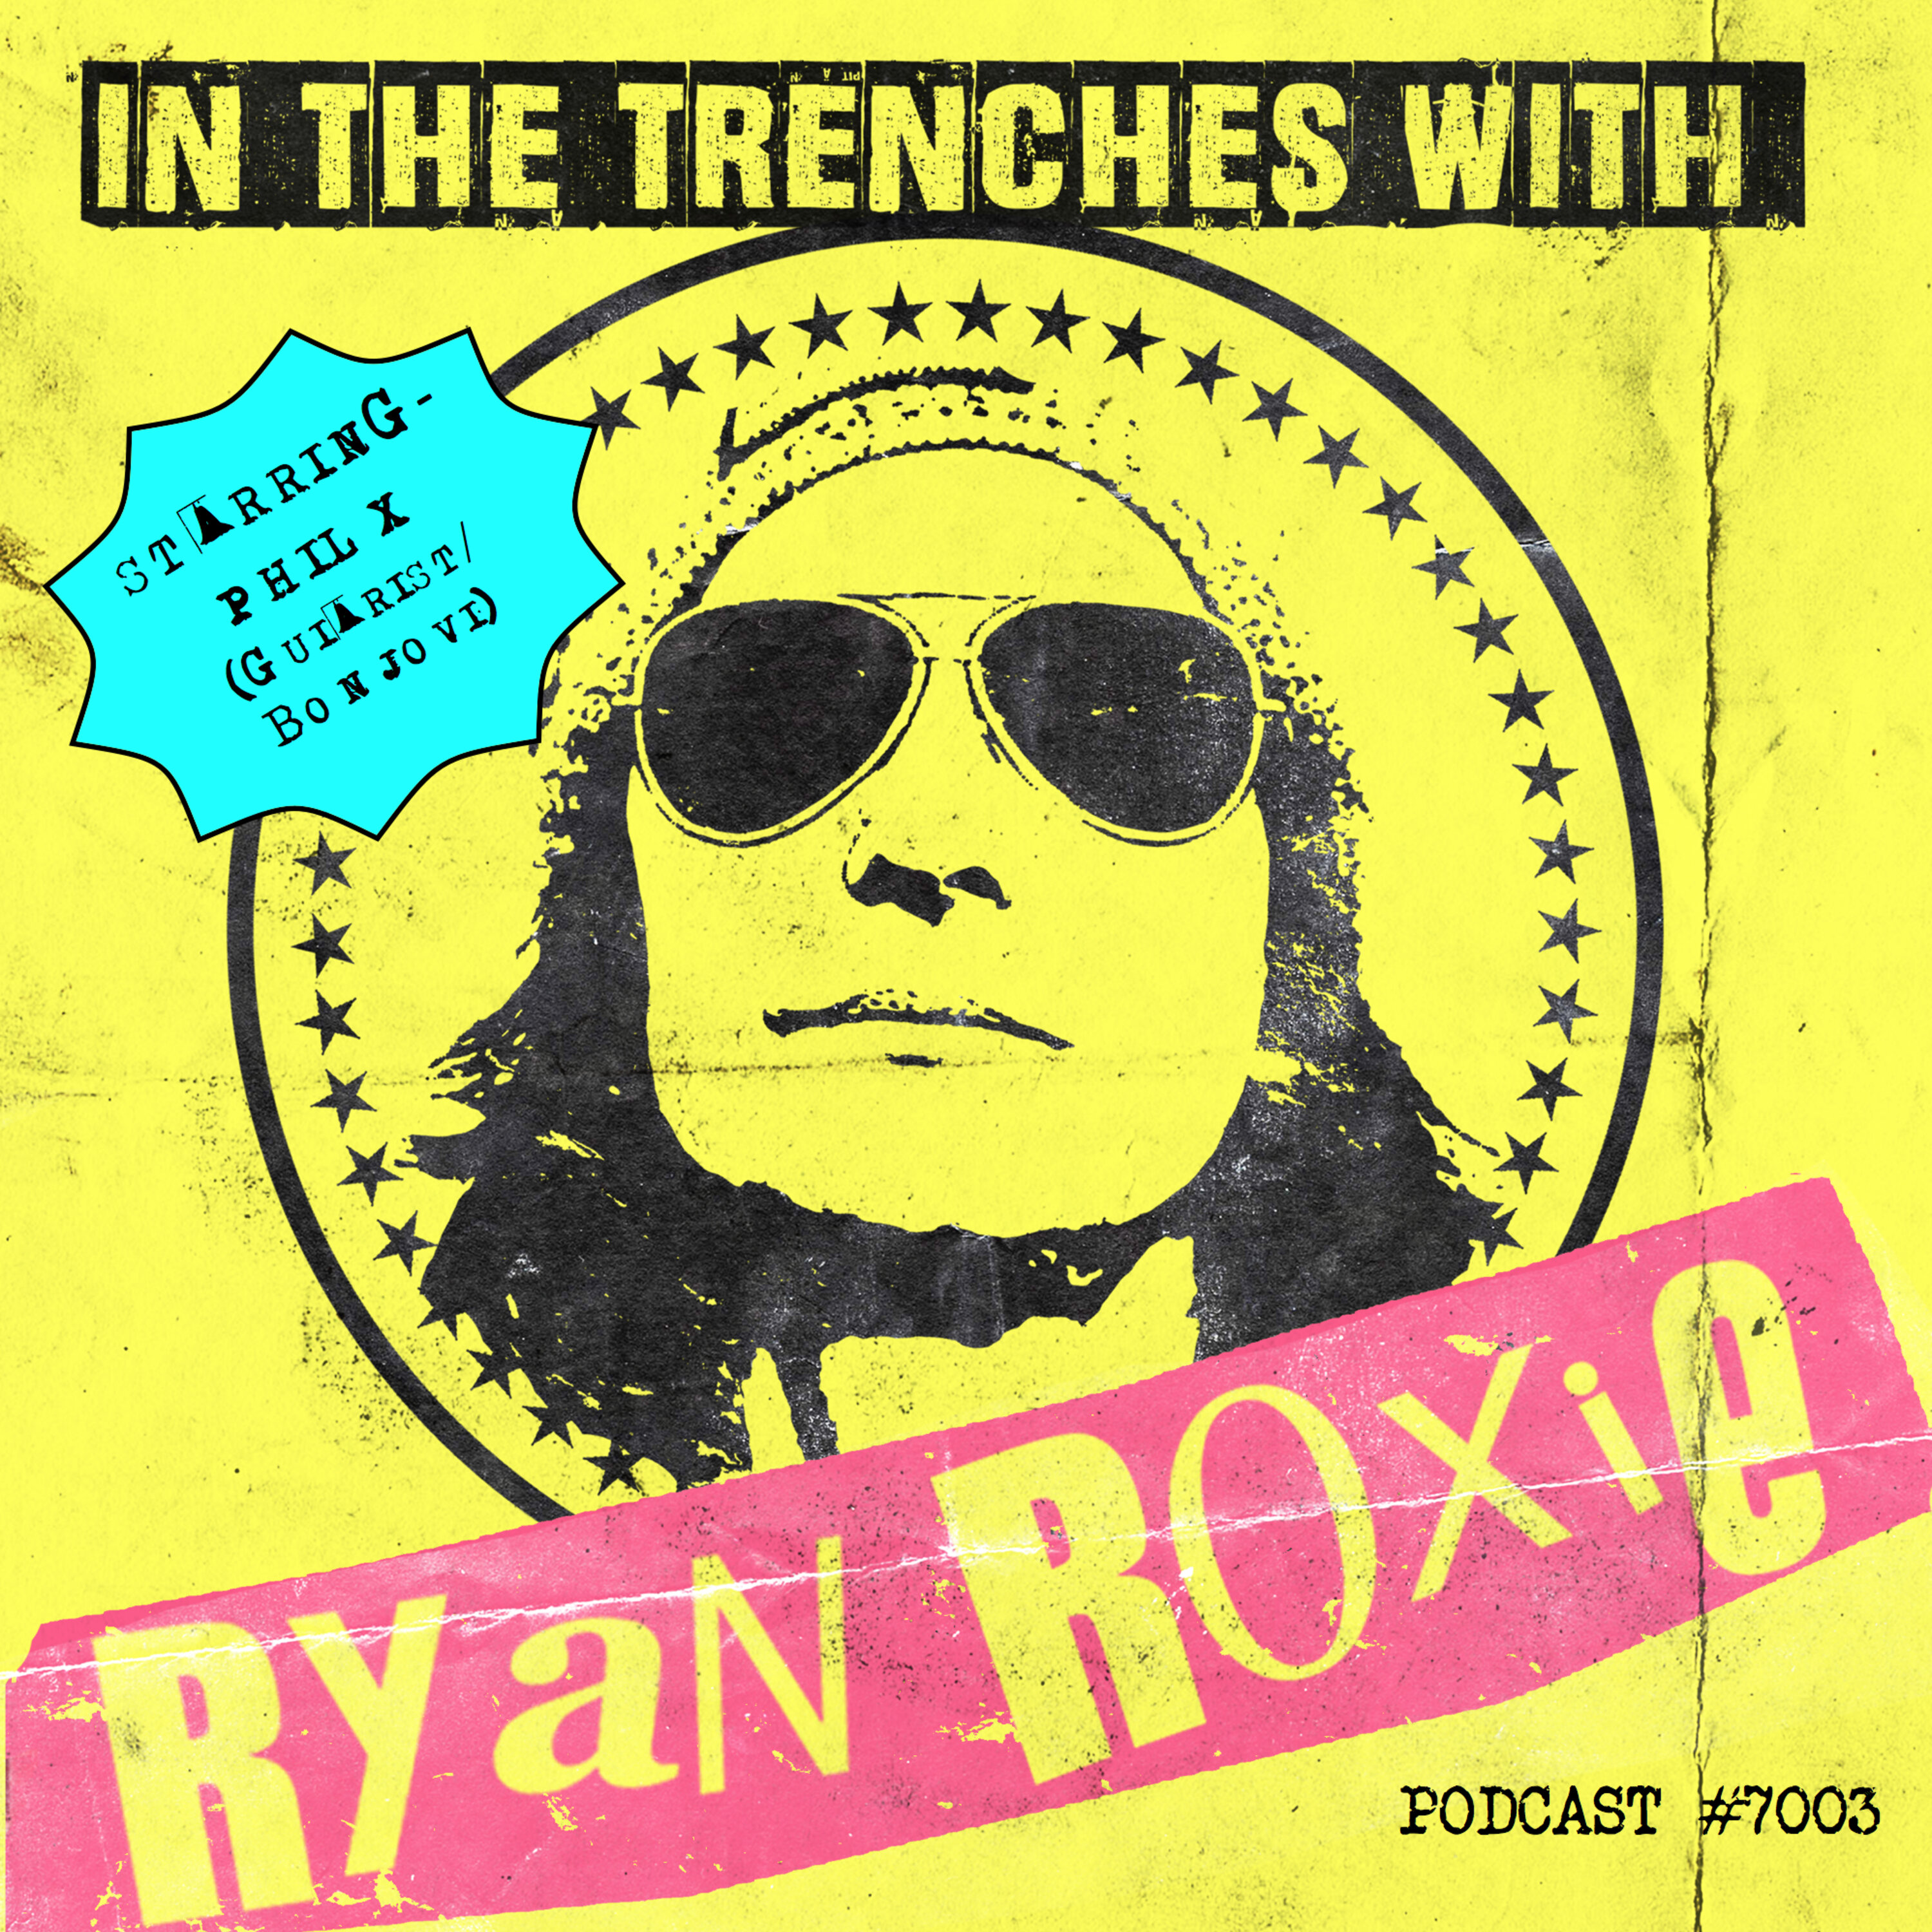 In The Trenches with Ryan Roxie Podcast -  Episode #7003 - Phil X (Bon Jovi) presented by Rock Talk With Mitch Lafon